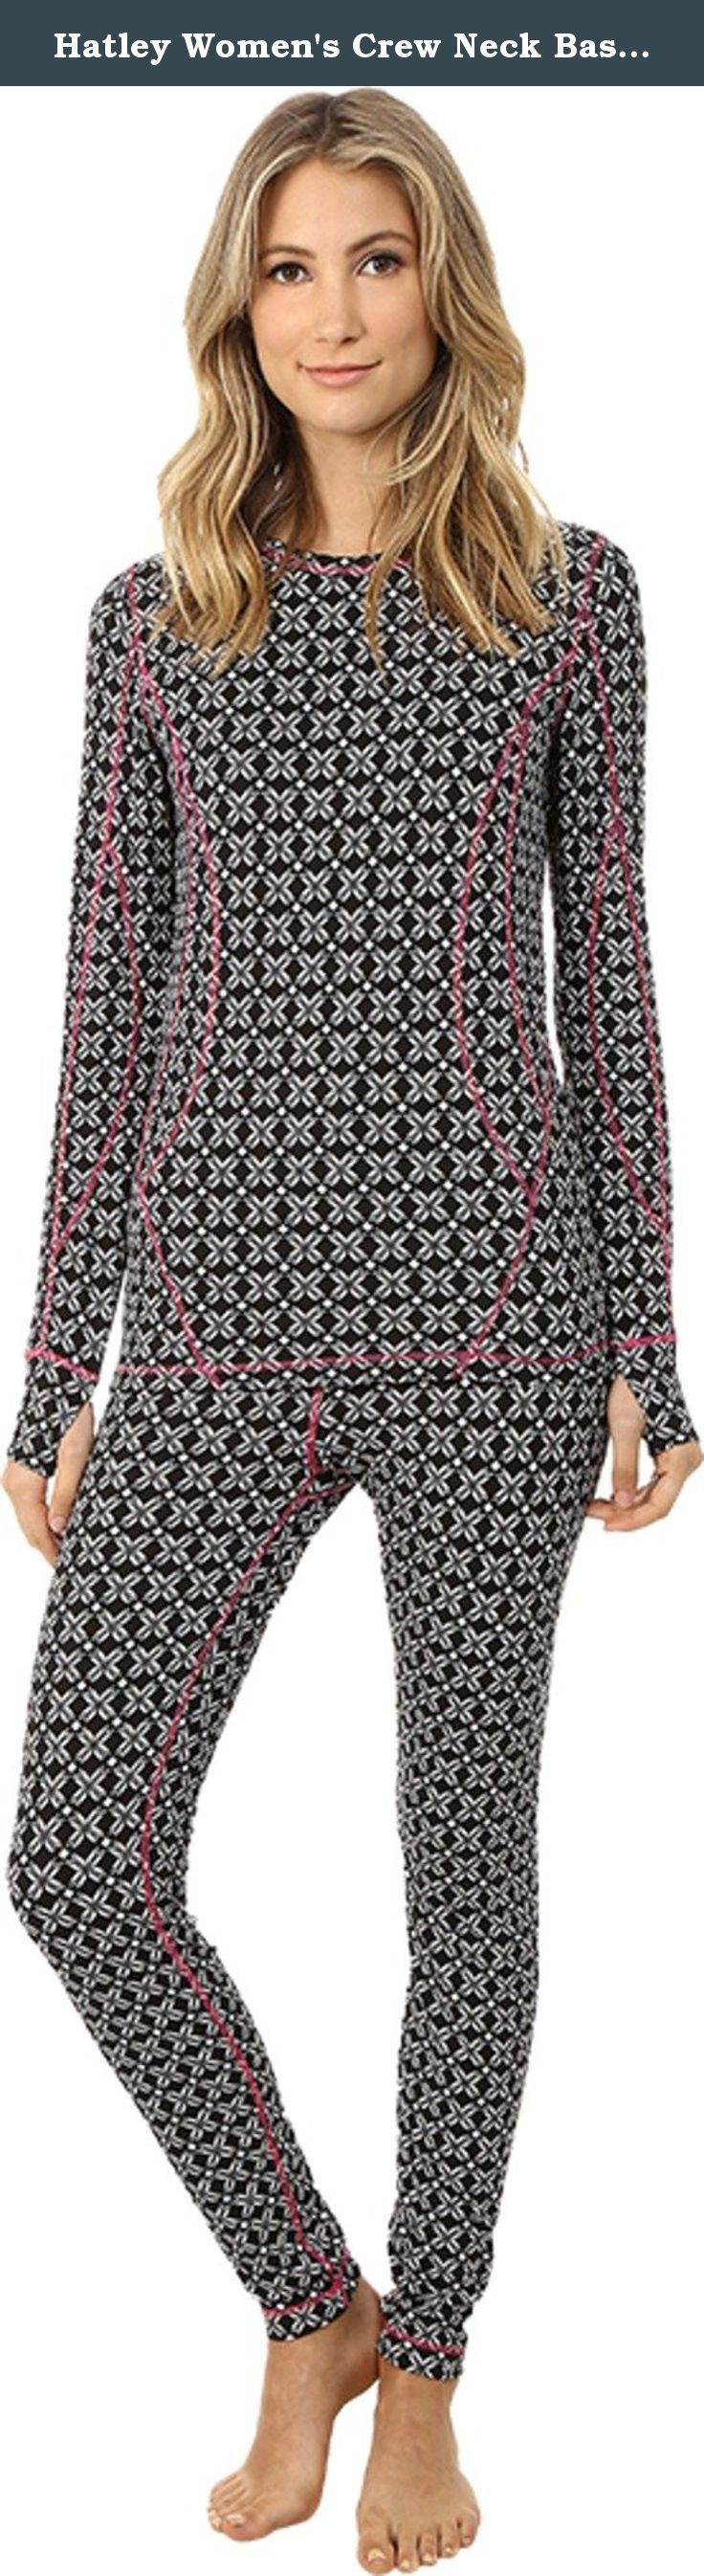 Hatley Women's Crew Neck Base Layer Set Black Snowflakes Pajama Set LG. Eye-catching snowflake print is featured on a snug-fit silhouette for easy layering. Long sleeve top features a crew neckline and banded cuffs with thumb holes for a secure fit. Regular rise pants feature a wide elastic waistband. 86% polyester, 14% spandex. Machine wash cold, tumble dry low.